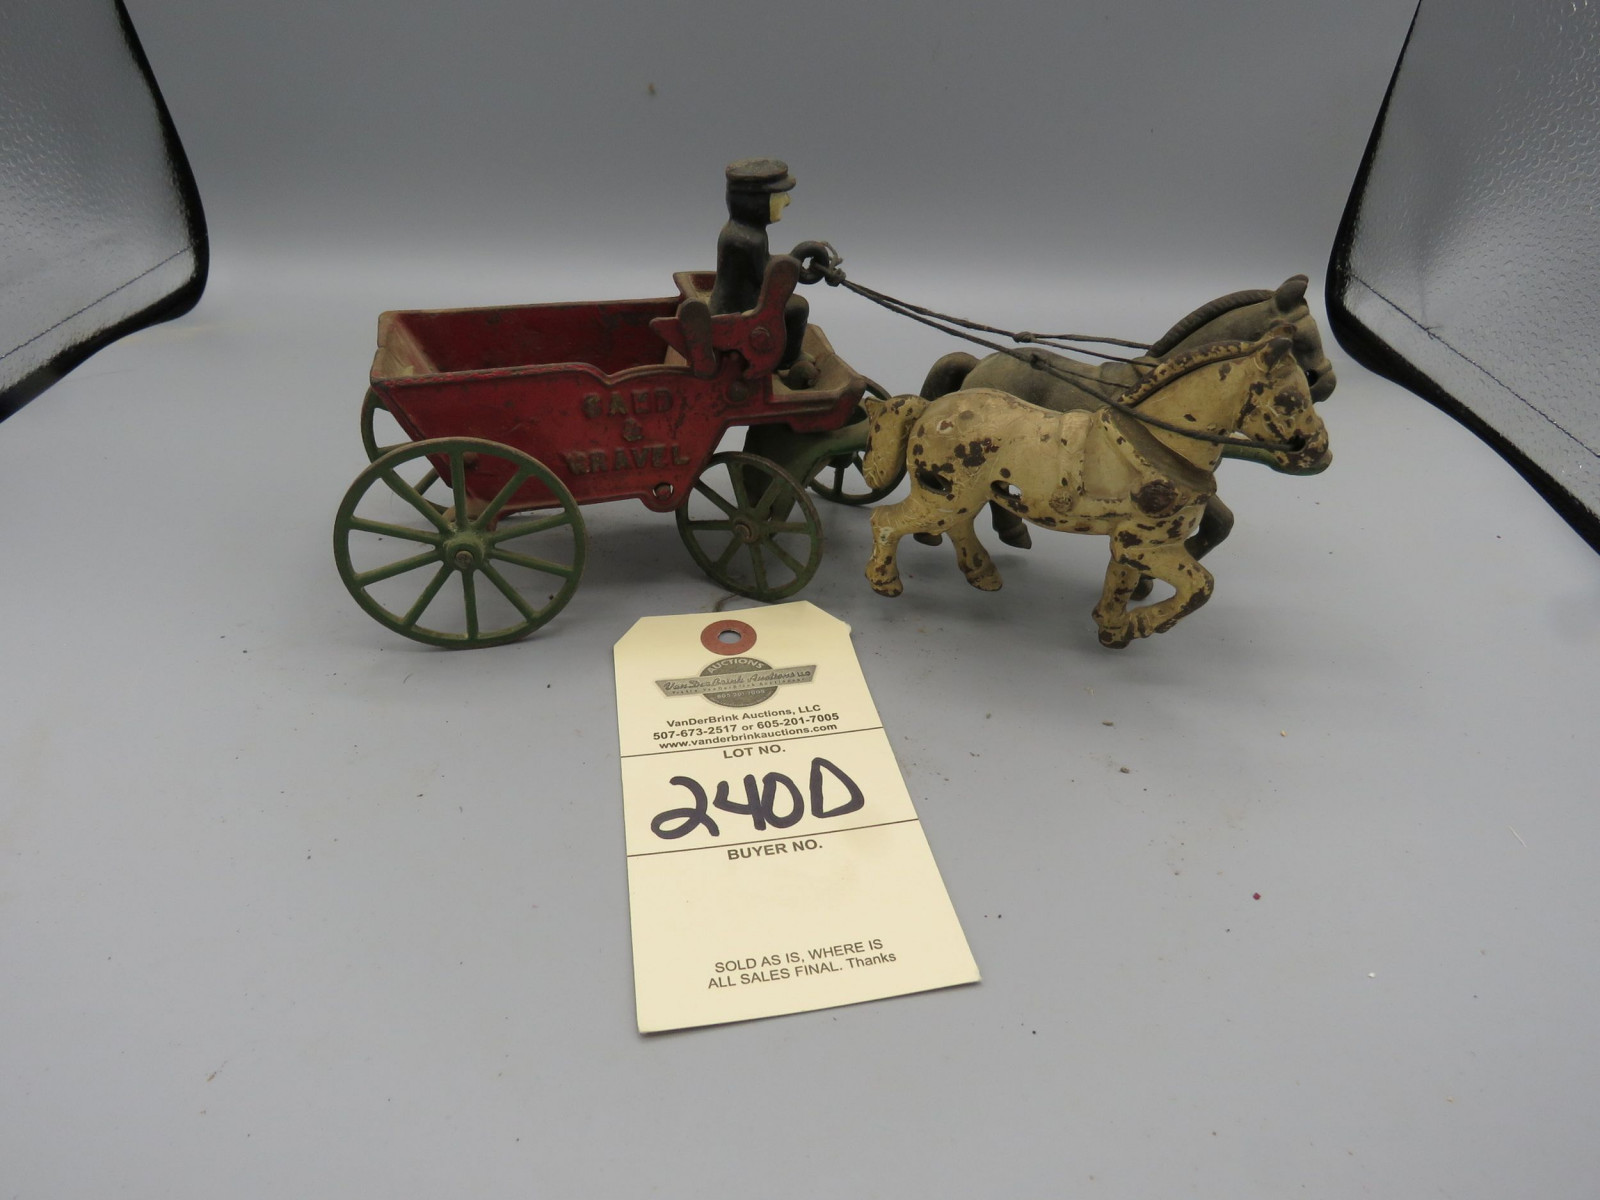 Vintage Cast Iron Horse Drawn Sand & Gravel Wagon with Driver and Horses - Image 1